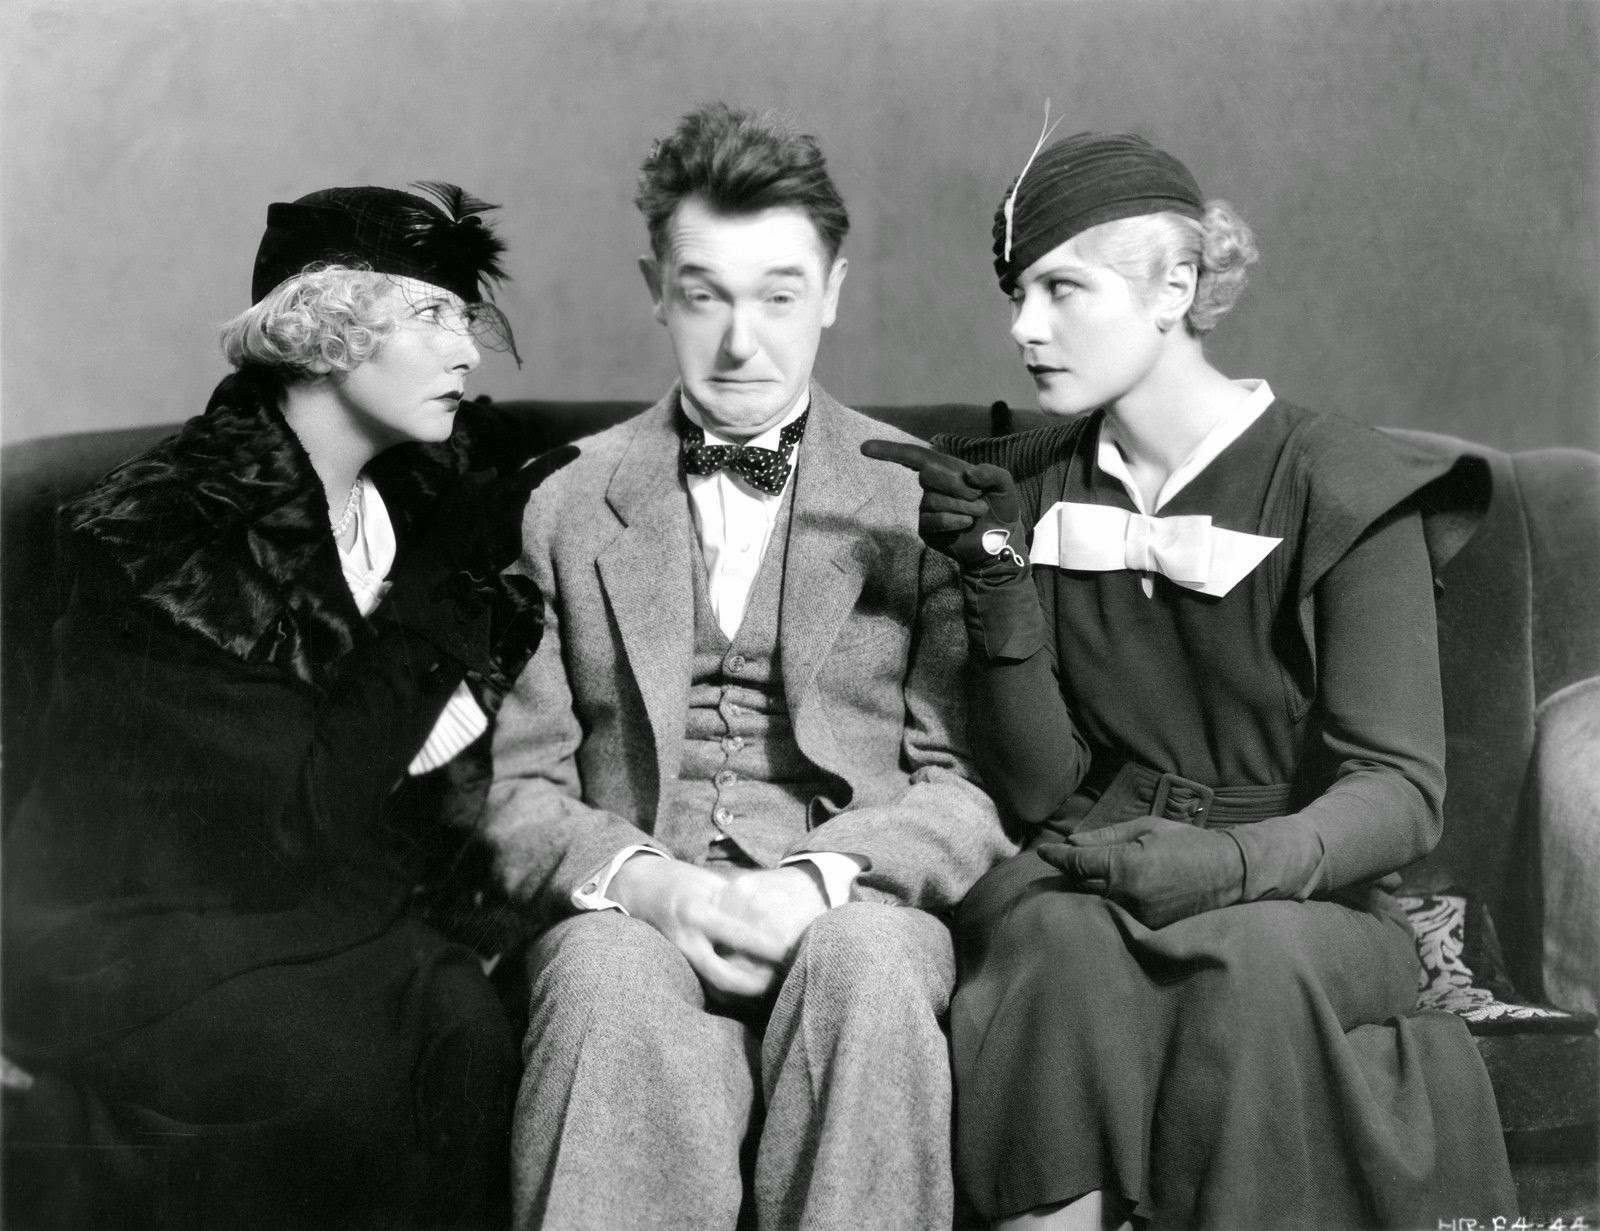 mae_busch_stan_laurel_and_dorothy_christy_in_sons_of_the_desert_1933.jpg